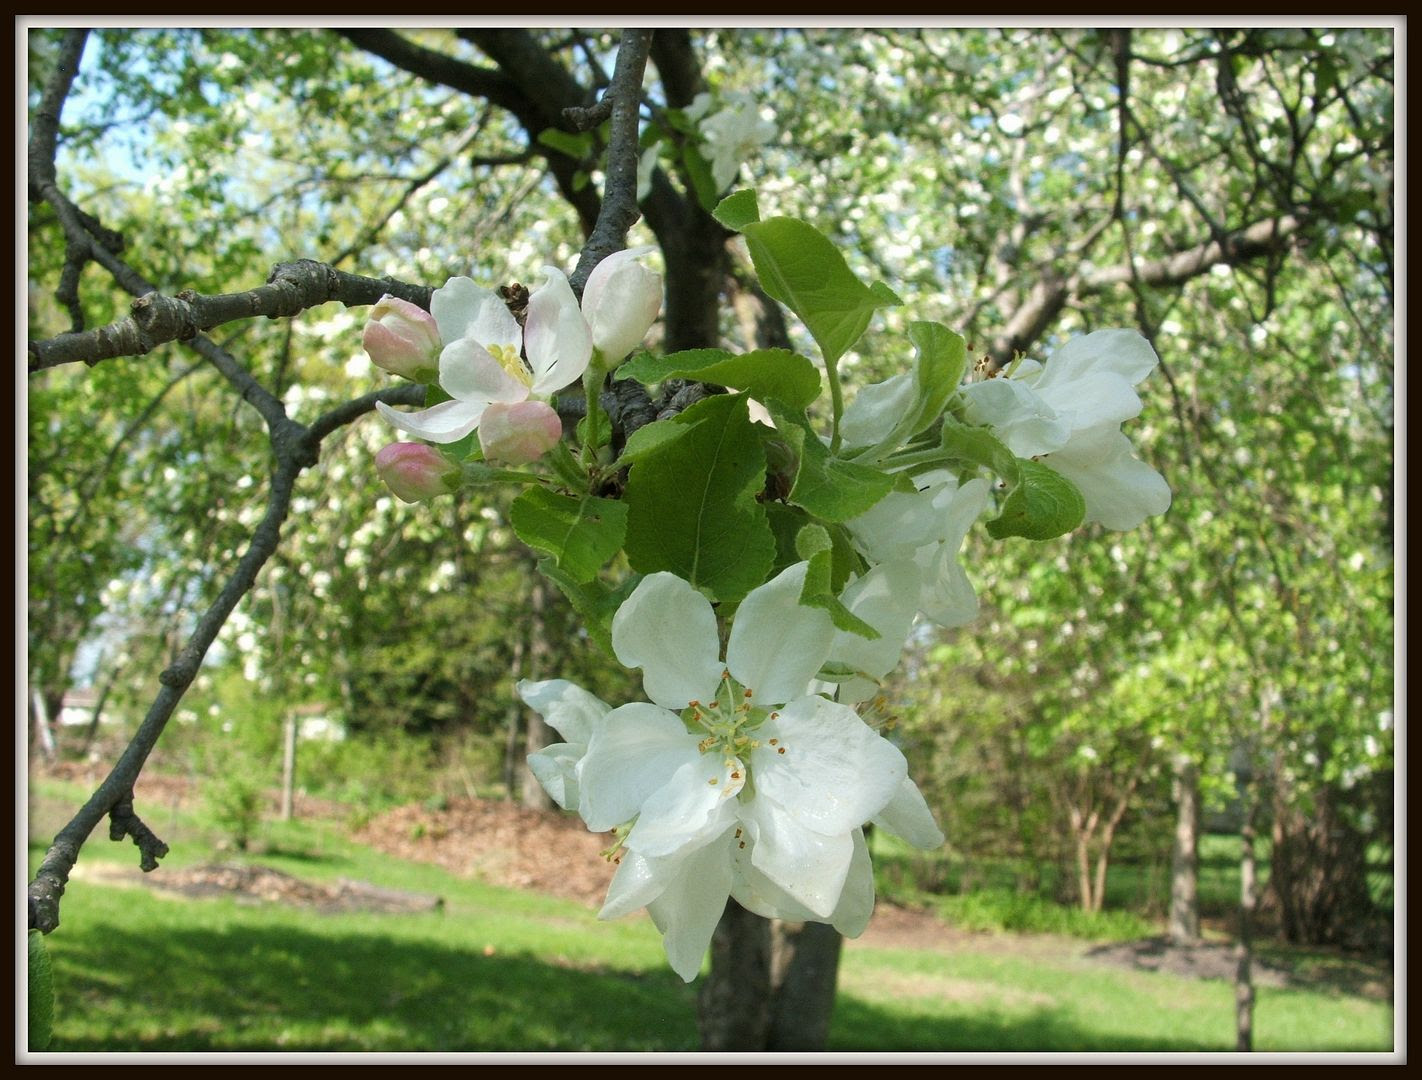 Blooming Blossoms by Angie Ouellette-Tower for godsgrowinggarden.com photo 014_zps550777db.jpg